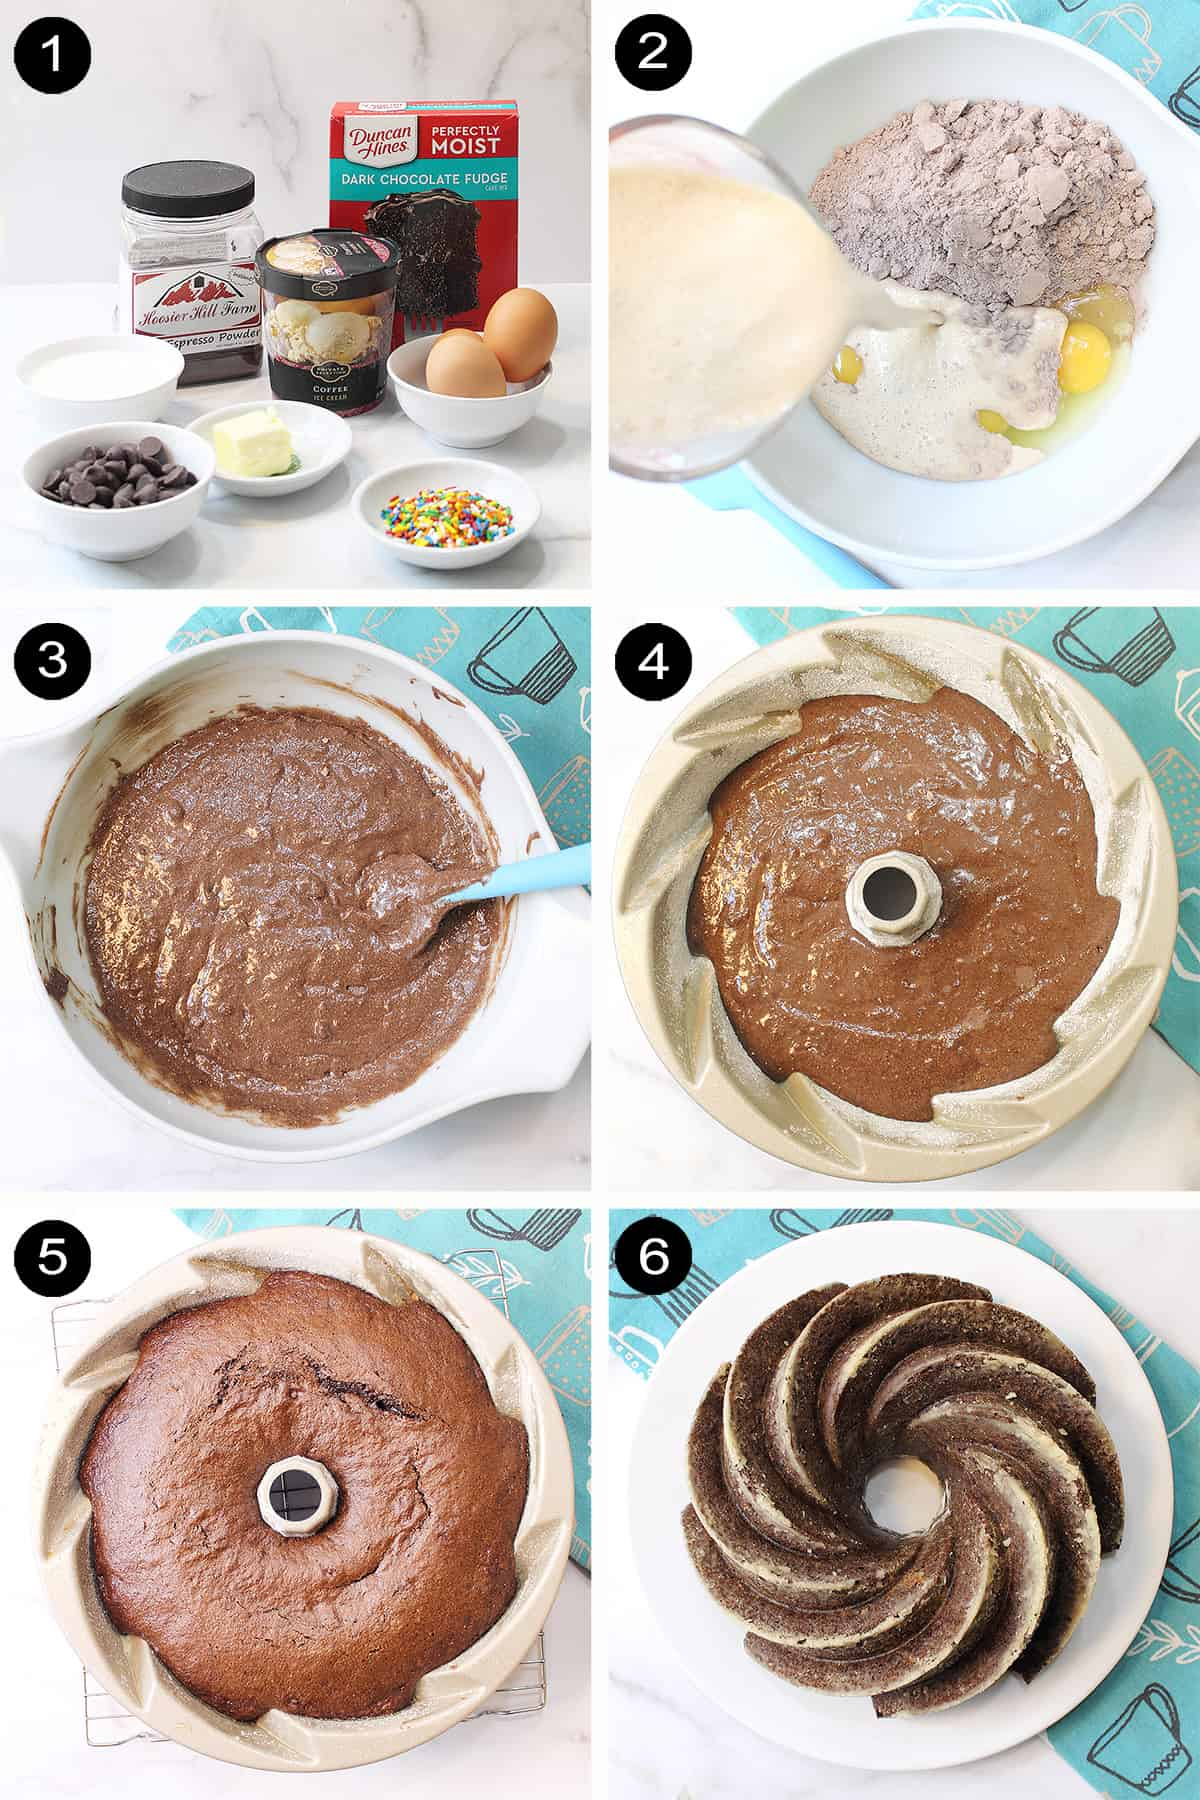 Steps to make melted ice cream cake.